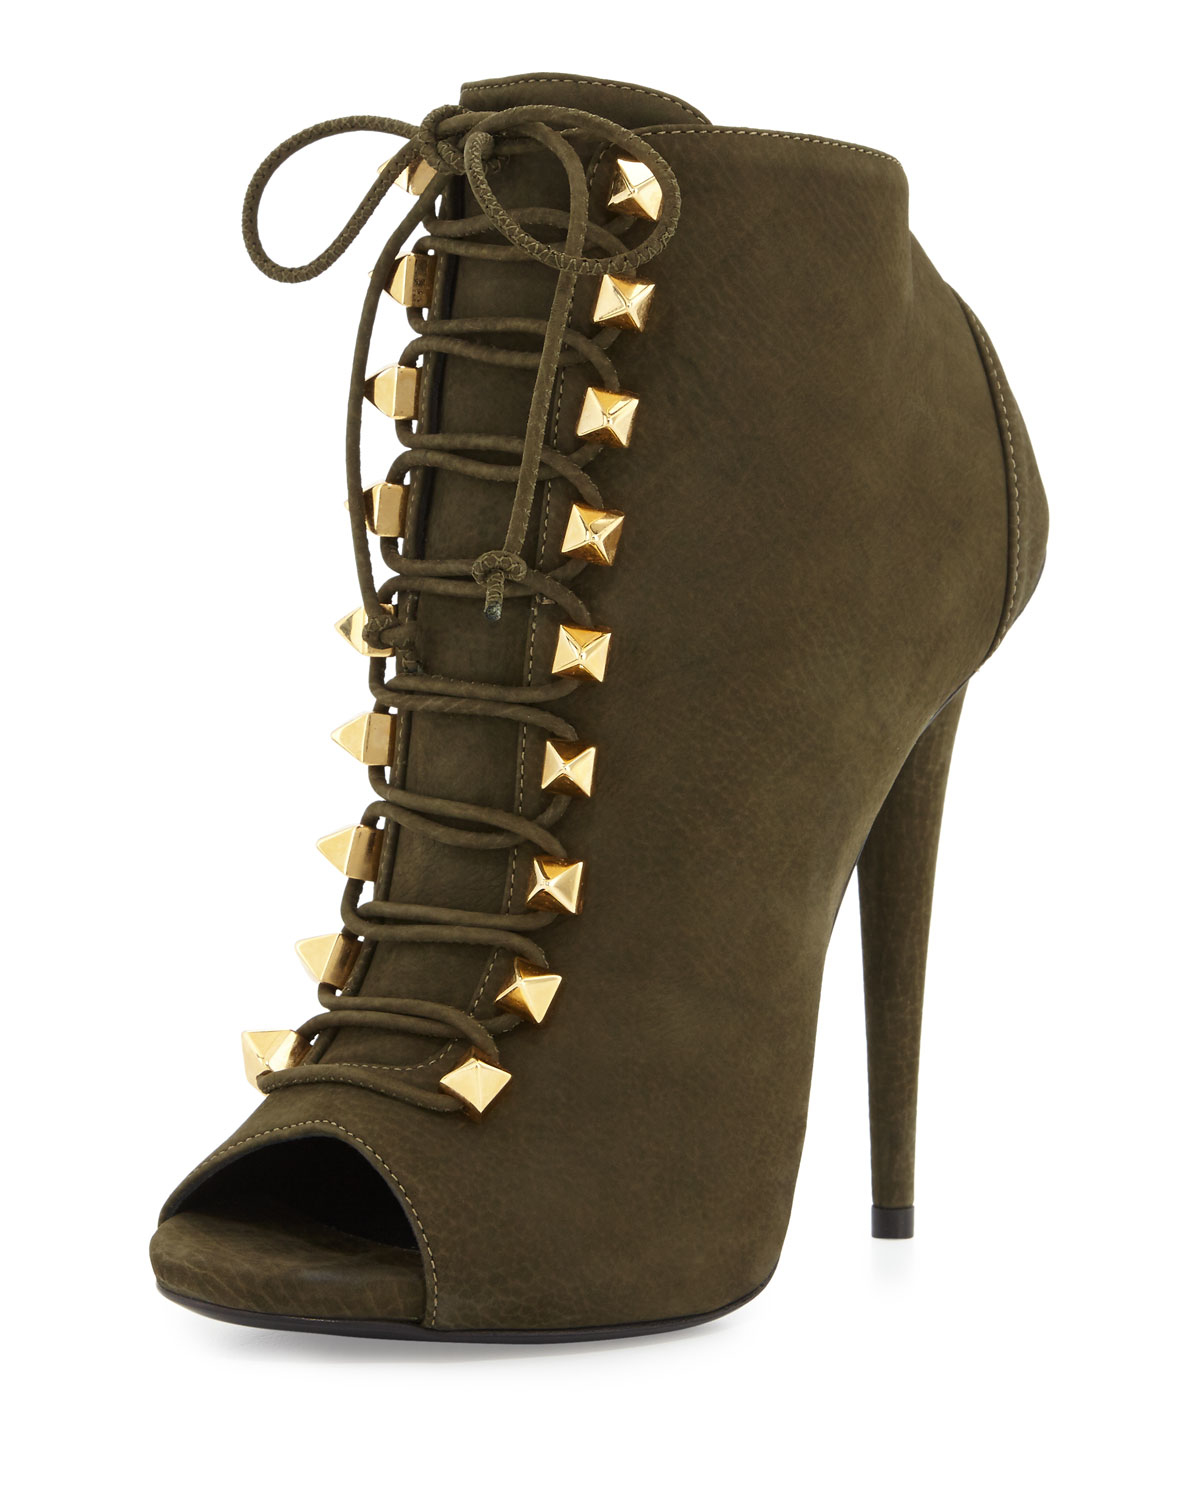 Giuseppe zanotti Suede Lace-up High-heel Bootie in Green | Lyst